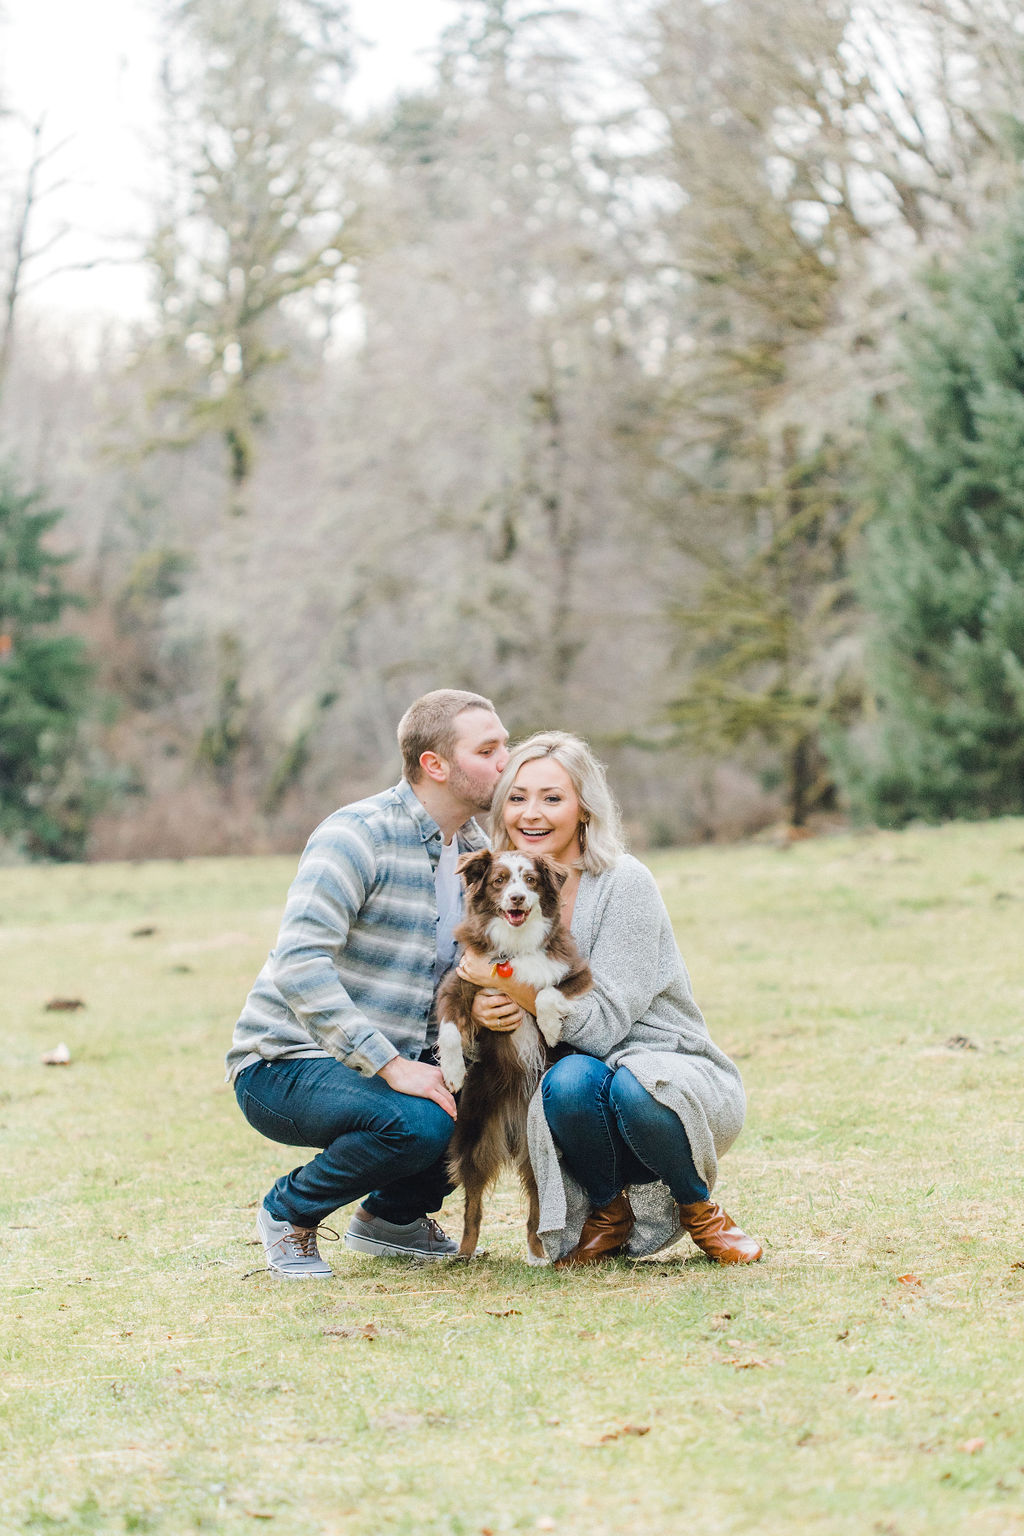 Kalle and Sterling's engagement session in the PNW on Rose Ranch with me here at Emma Rose Company was gorgeous and if you're looking for engagement session inspiration, look no further!